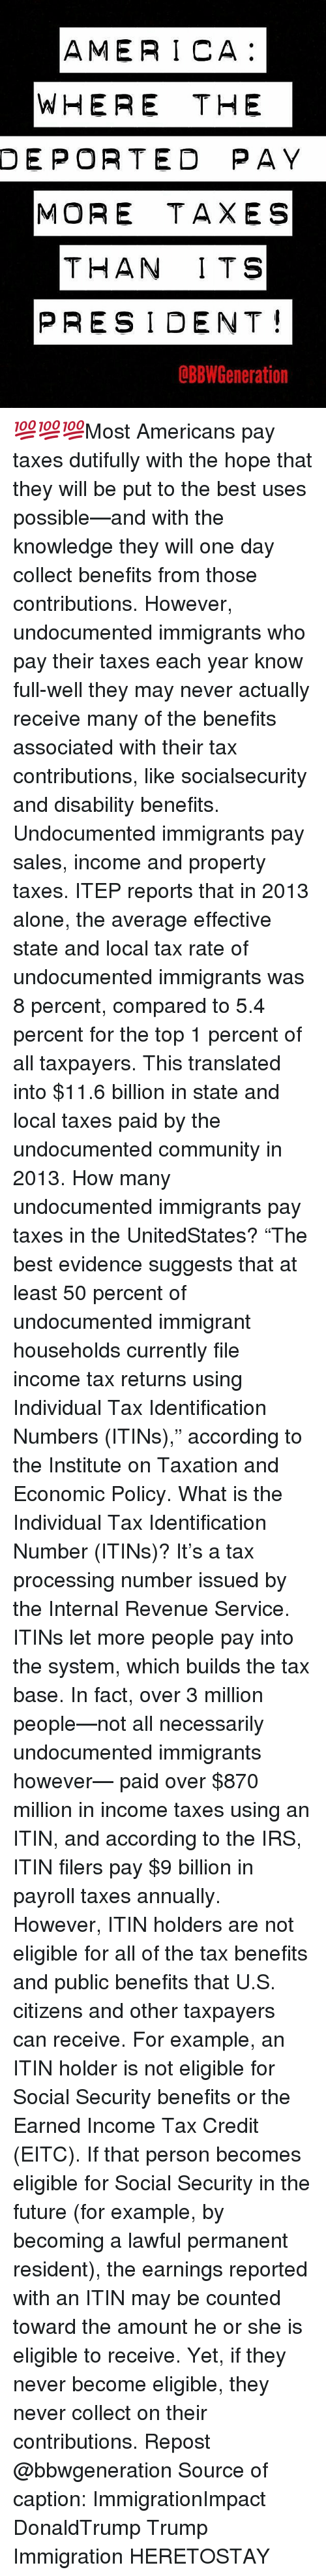 "evidently: AMERICA  WHERE THE  DEPORTED PAY  MORE TAXES  THAN ITS  PRESIDENT  dBBW Generation 💯💯💯Most Americans pay taxes dutifully with the hope that they will be put to the best uses possible—and with the knowledge they will one day collect benefits from those contributions. However, undocumented immigrants who pay their taxes each year know full-well they may never actually receive many of the benefits associated with their tax contributions, like socialsecurity and disability benefits. Undocumented immigrants pay sales, income and property taxes. ITEP reports that in 2013 alone, the average effective state and local tax rate of undocumented immigrants was 8 percent, compared to 5.4 percent for the top 1 percent of all taxpayers. This translated into $11.6 billion in state and local taxes paid by the undocumented community in 2013. How many undocumented immigrants pay taxes in the UnitedStates? ""The best evidence suggests that at least 50 percent of undocumented immigrant households currently file income tax returns using Individual Tax Identification Numbers (ITINs),"" according to the Institute on Taxation and Economic Policy. What is the Individual Tax Identification Number (ITINs)? It's a tax processing number issued by the Internal Revenue Service. ITINs let more people pay into the system, which builds the tax base. In fact, over 3 million people—not all necessarily undocumented immigrants however— paid over $870 million in income taxes using an ITIN, and according to the IRS, ITIN filers pay $9 billion in payroll taxes annually. However, ITIN holders are not eligible for all of the tax benefits and public benefits that U.S. citizens and other taxpayers can receive. For example, an ITIN holder is not eligible for Social Security benefits or the Earned Income Tax Credit (EITC). If that person becomes eligible for Social Security in the future (for example, by becoming a lawful permanent resident), the earnings reported with an ITIN may be counted toward the amount he or she is eligible to receive. Yet, if they never become eligible, they never collect on their contributions. Repost @bbwgeneration Source of caption: ImmigrationImpact DonaldTrump Trump Immigration HERETOSTAY"